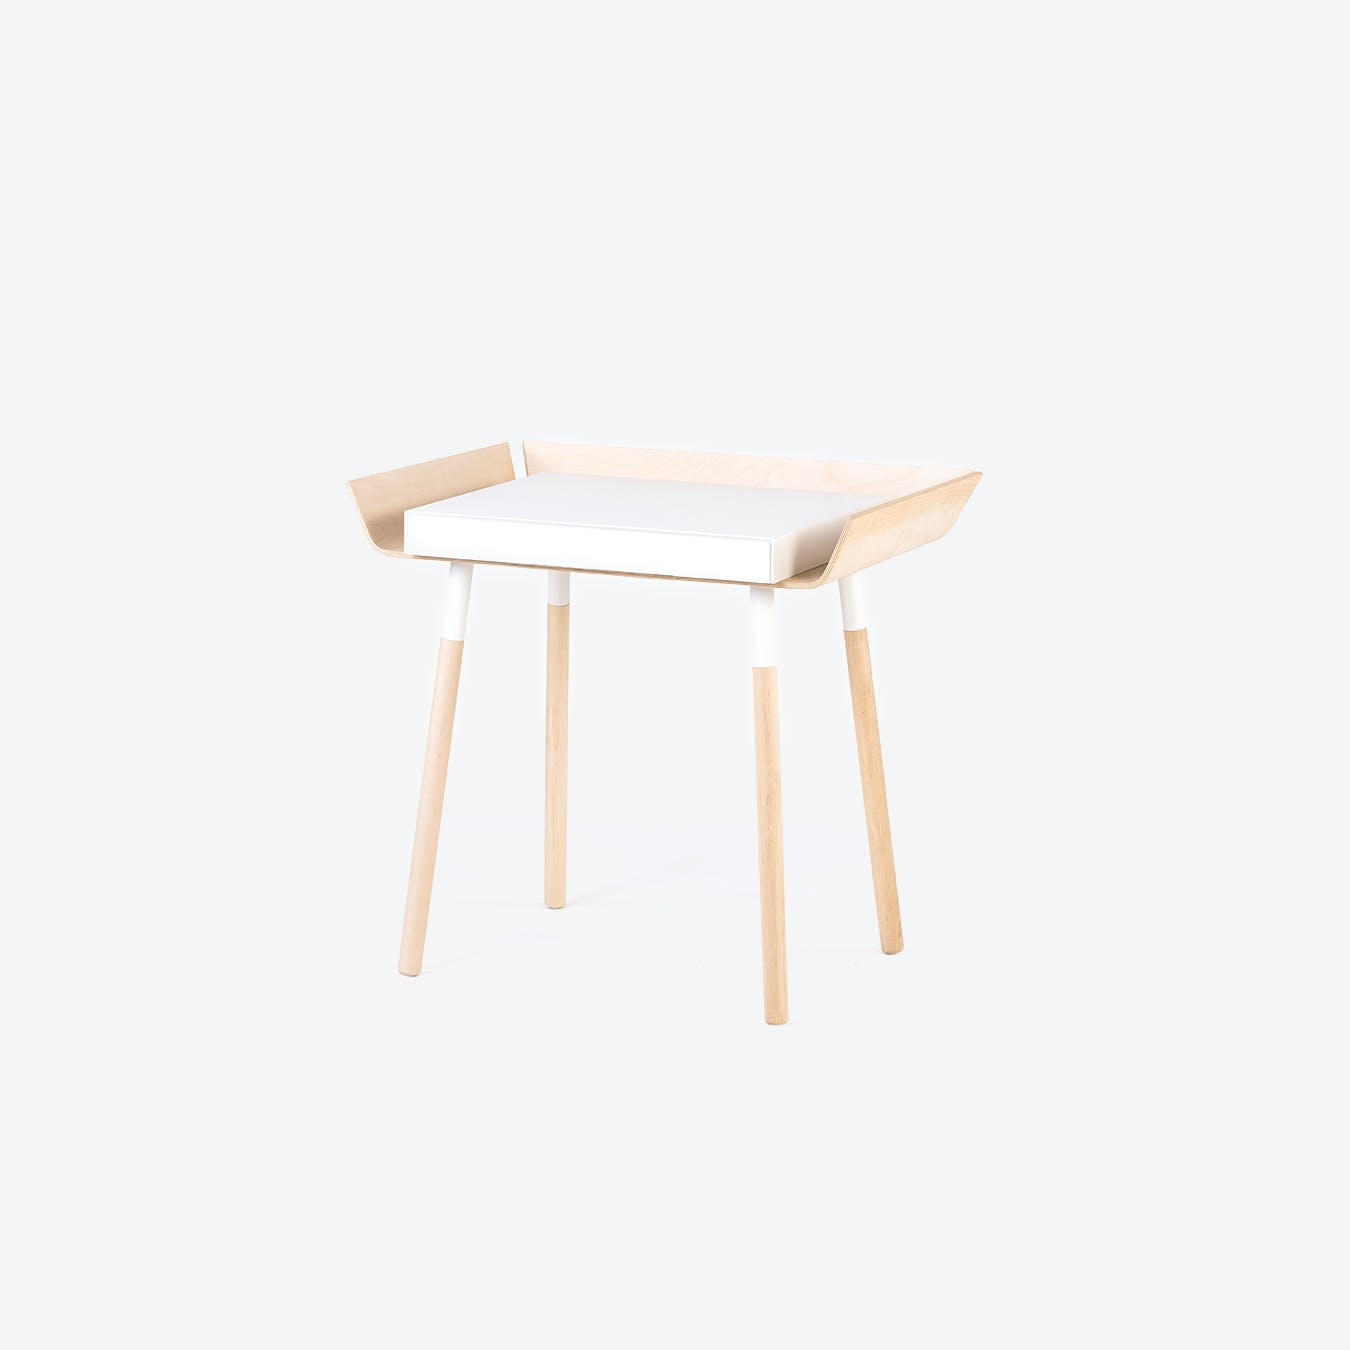 1 Drawer 'My Writing' Desk in Natural Birch